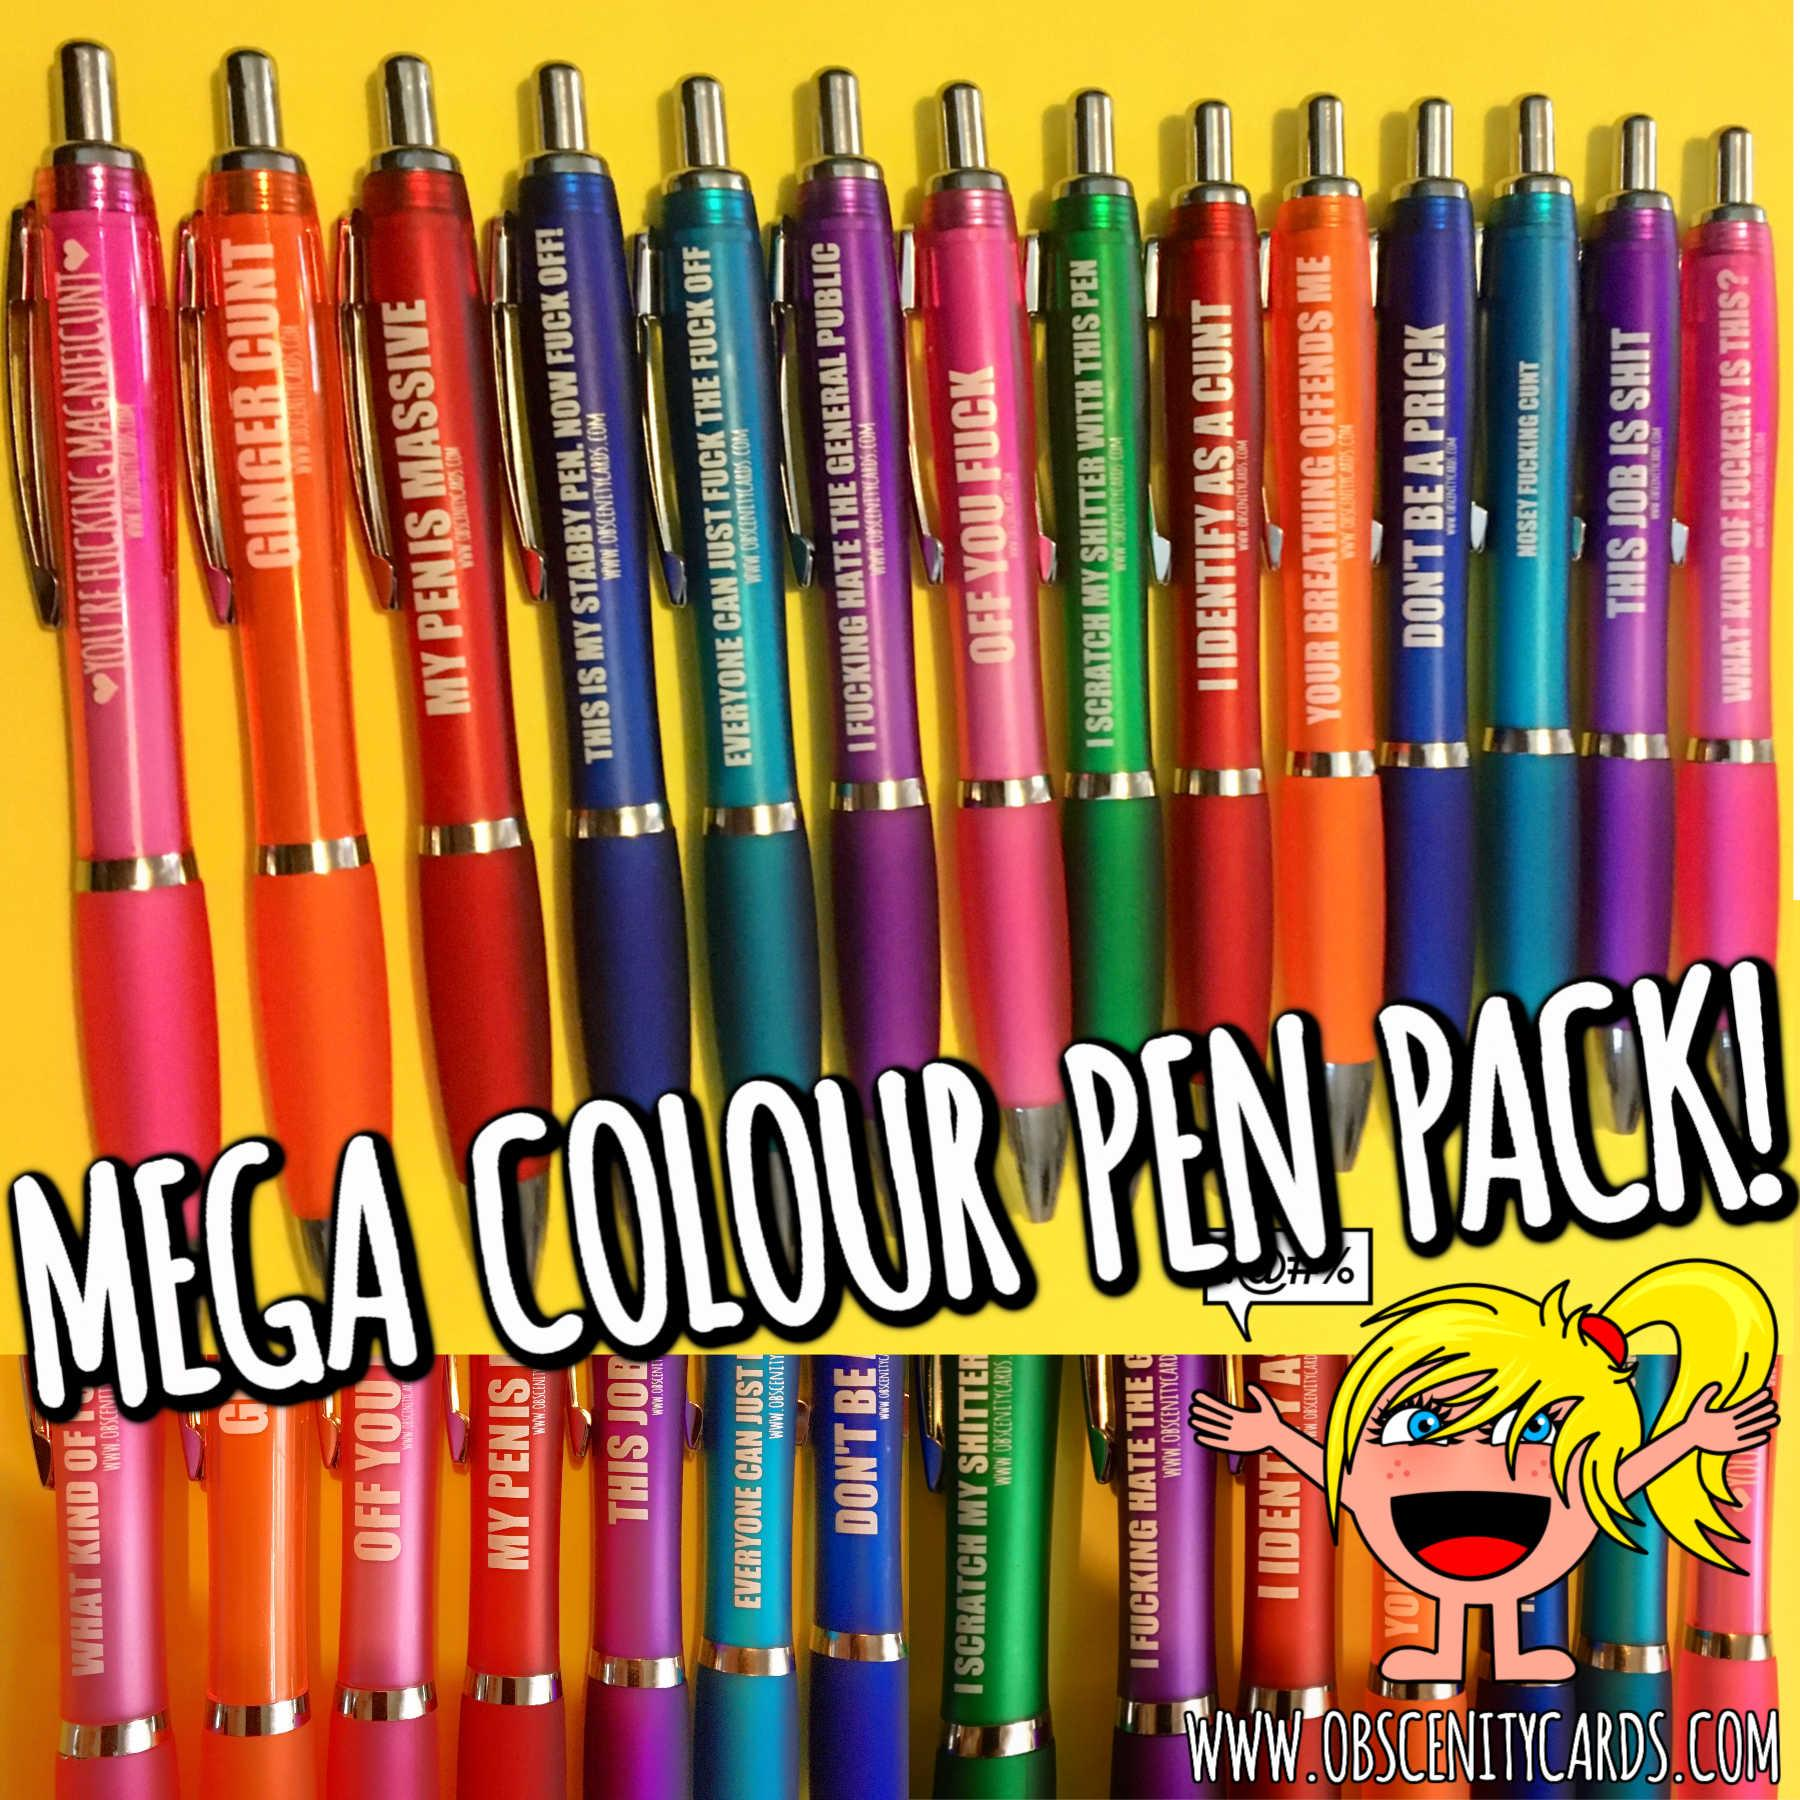 MIXED PACK OF FUNNY OBSCENITY PENS X 14 - THE MEGA COLOUR PACK